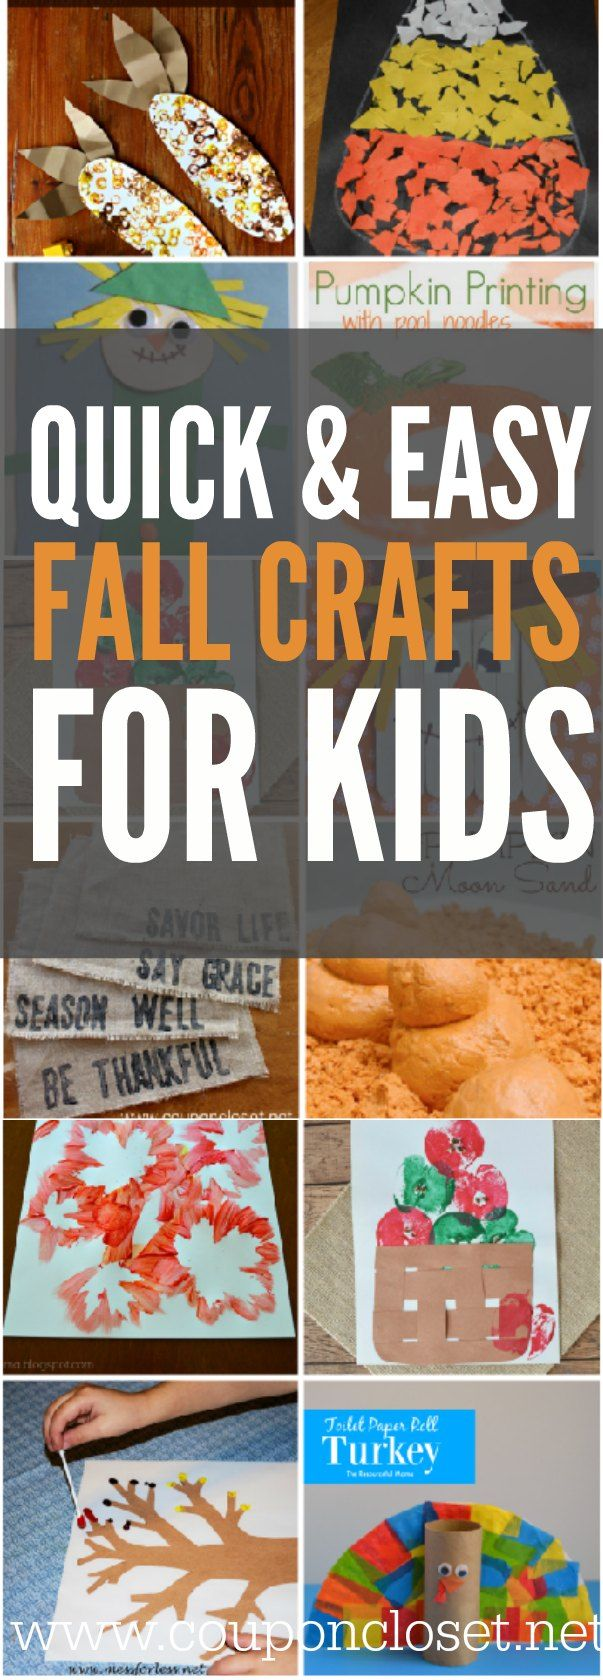 Over 15 of the best Fall Crafts for Kids - Quick and Easy Fall crafts for toddlers - Fall Art Projects for Preschoolers and more!